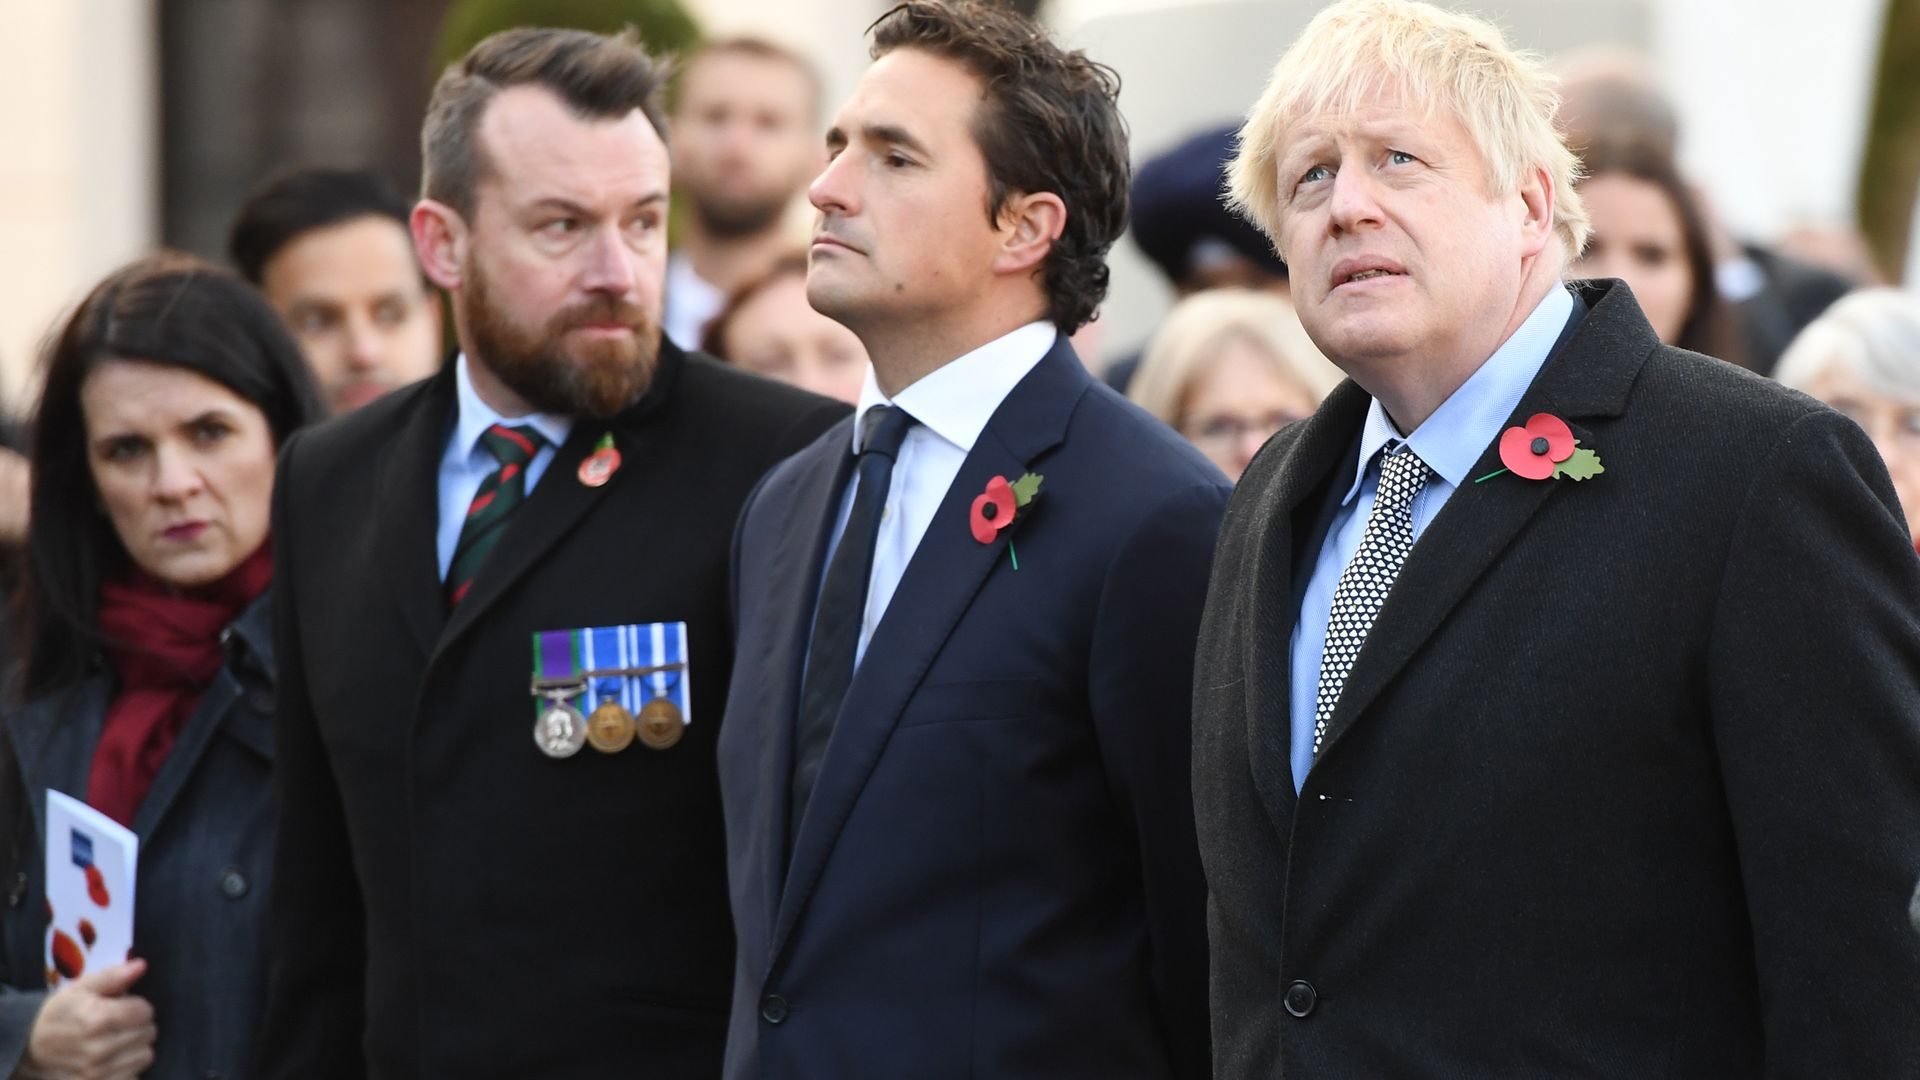 Prime minister Boris Johnson (right) and former defence minister Johnny Mercer (centre) during a service at the cenotaph in St Peter's Square, Wolverhampton, to mark Armistice Day in 2019 - Credit: PA